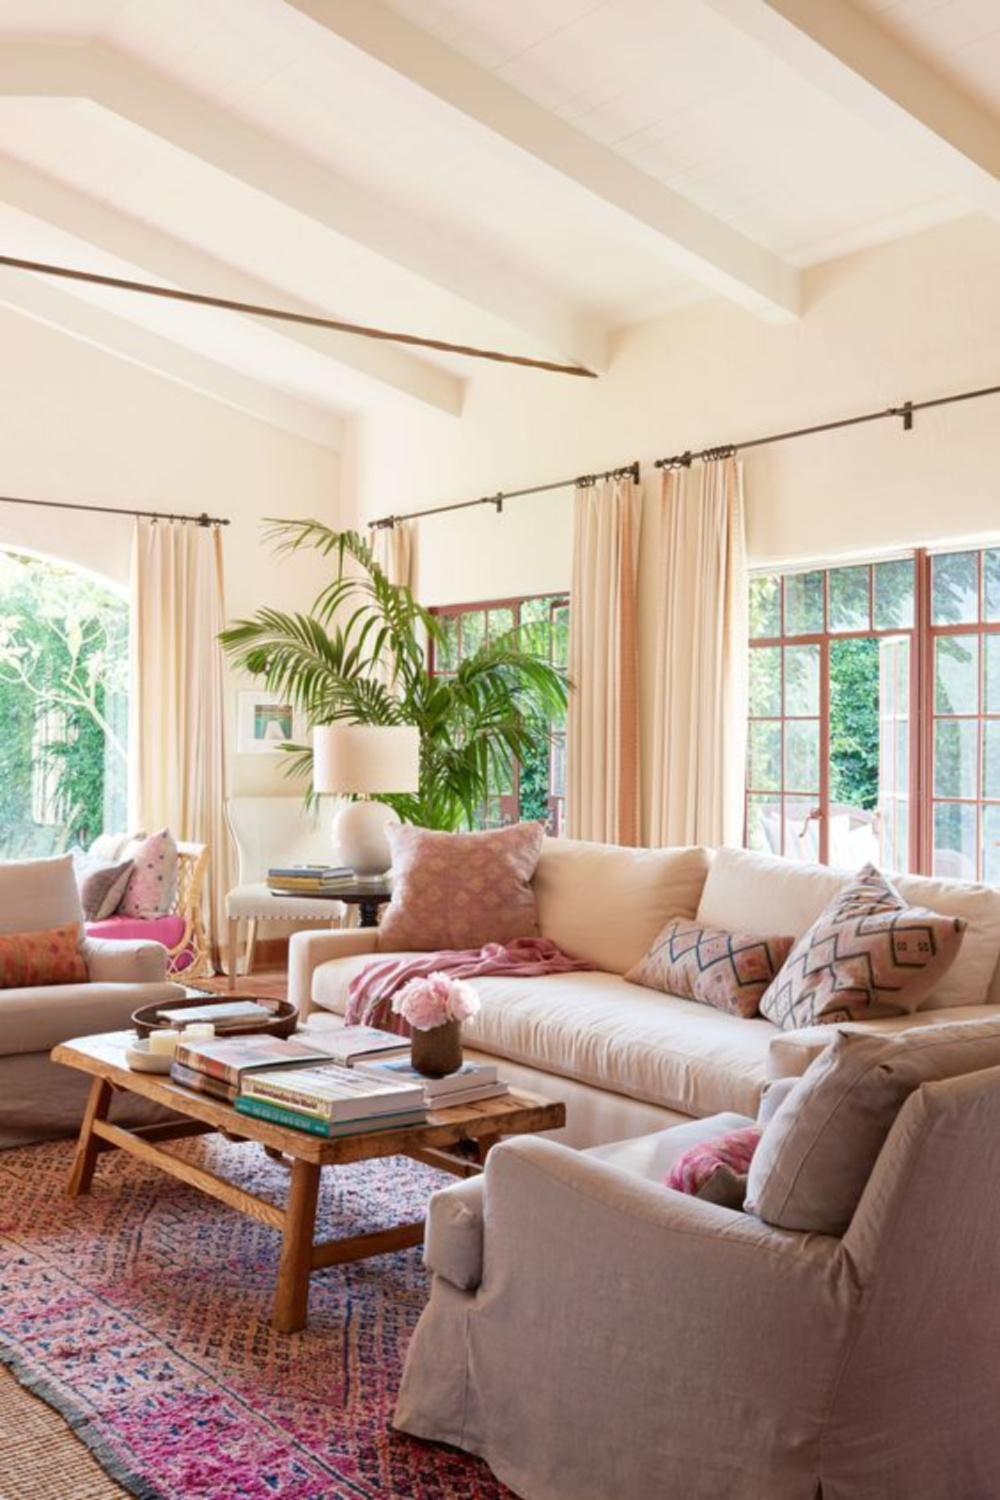 """Reese Witherspoon's House in """"Home Again"""" Movie. A pretty living room with California happy chic, linen furniture, and pops of pink. It's actually the living room in the Spanish hacienda of Reese Witherspoon's House in HOME AGAIN. #livingroom #california #reesewitherspoon #homeagain"""